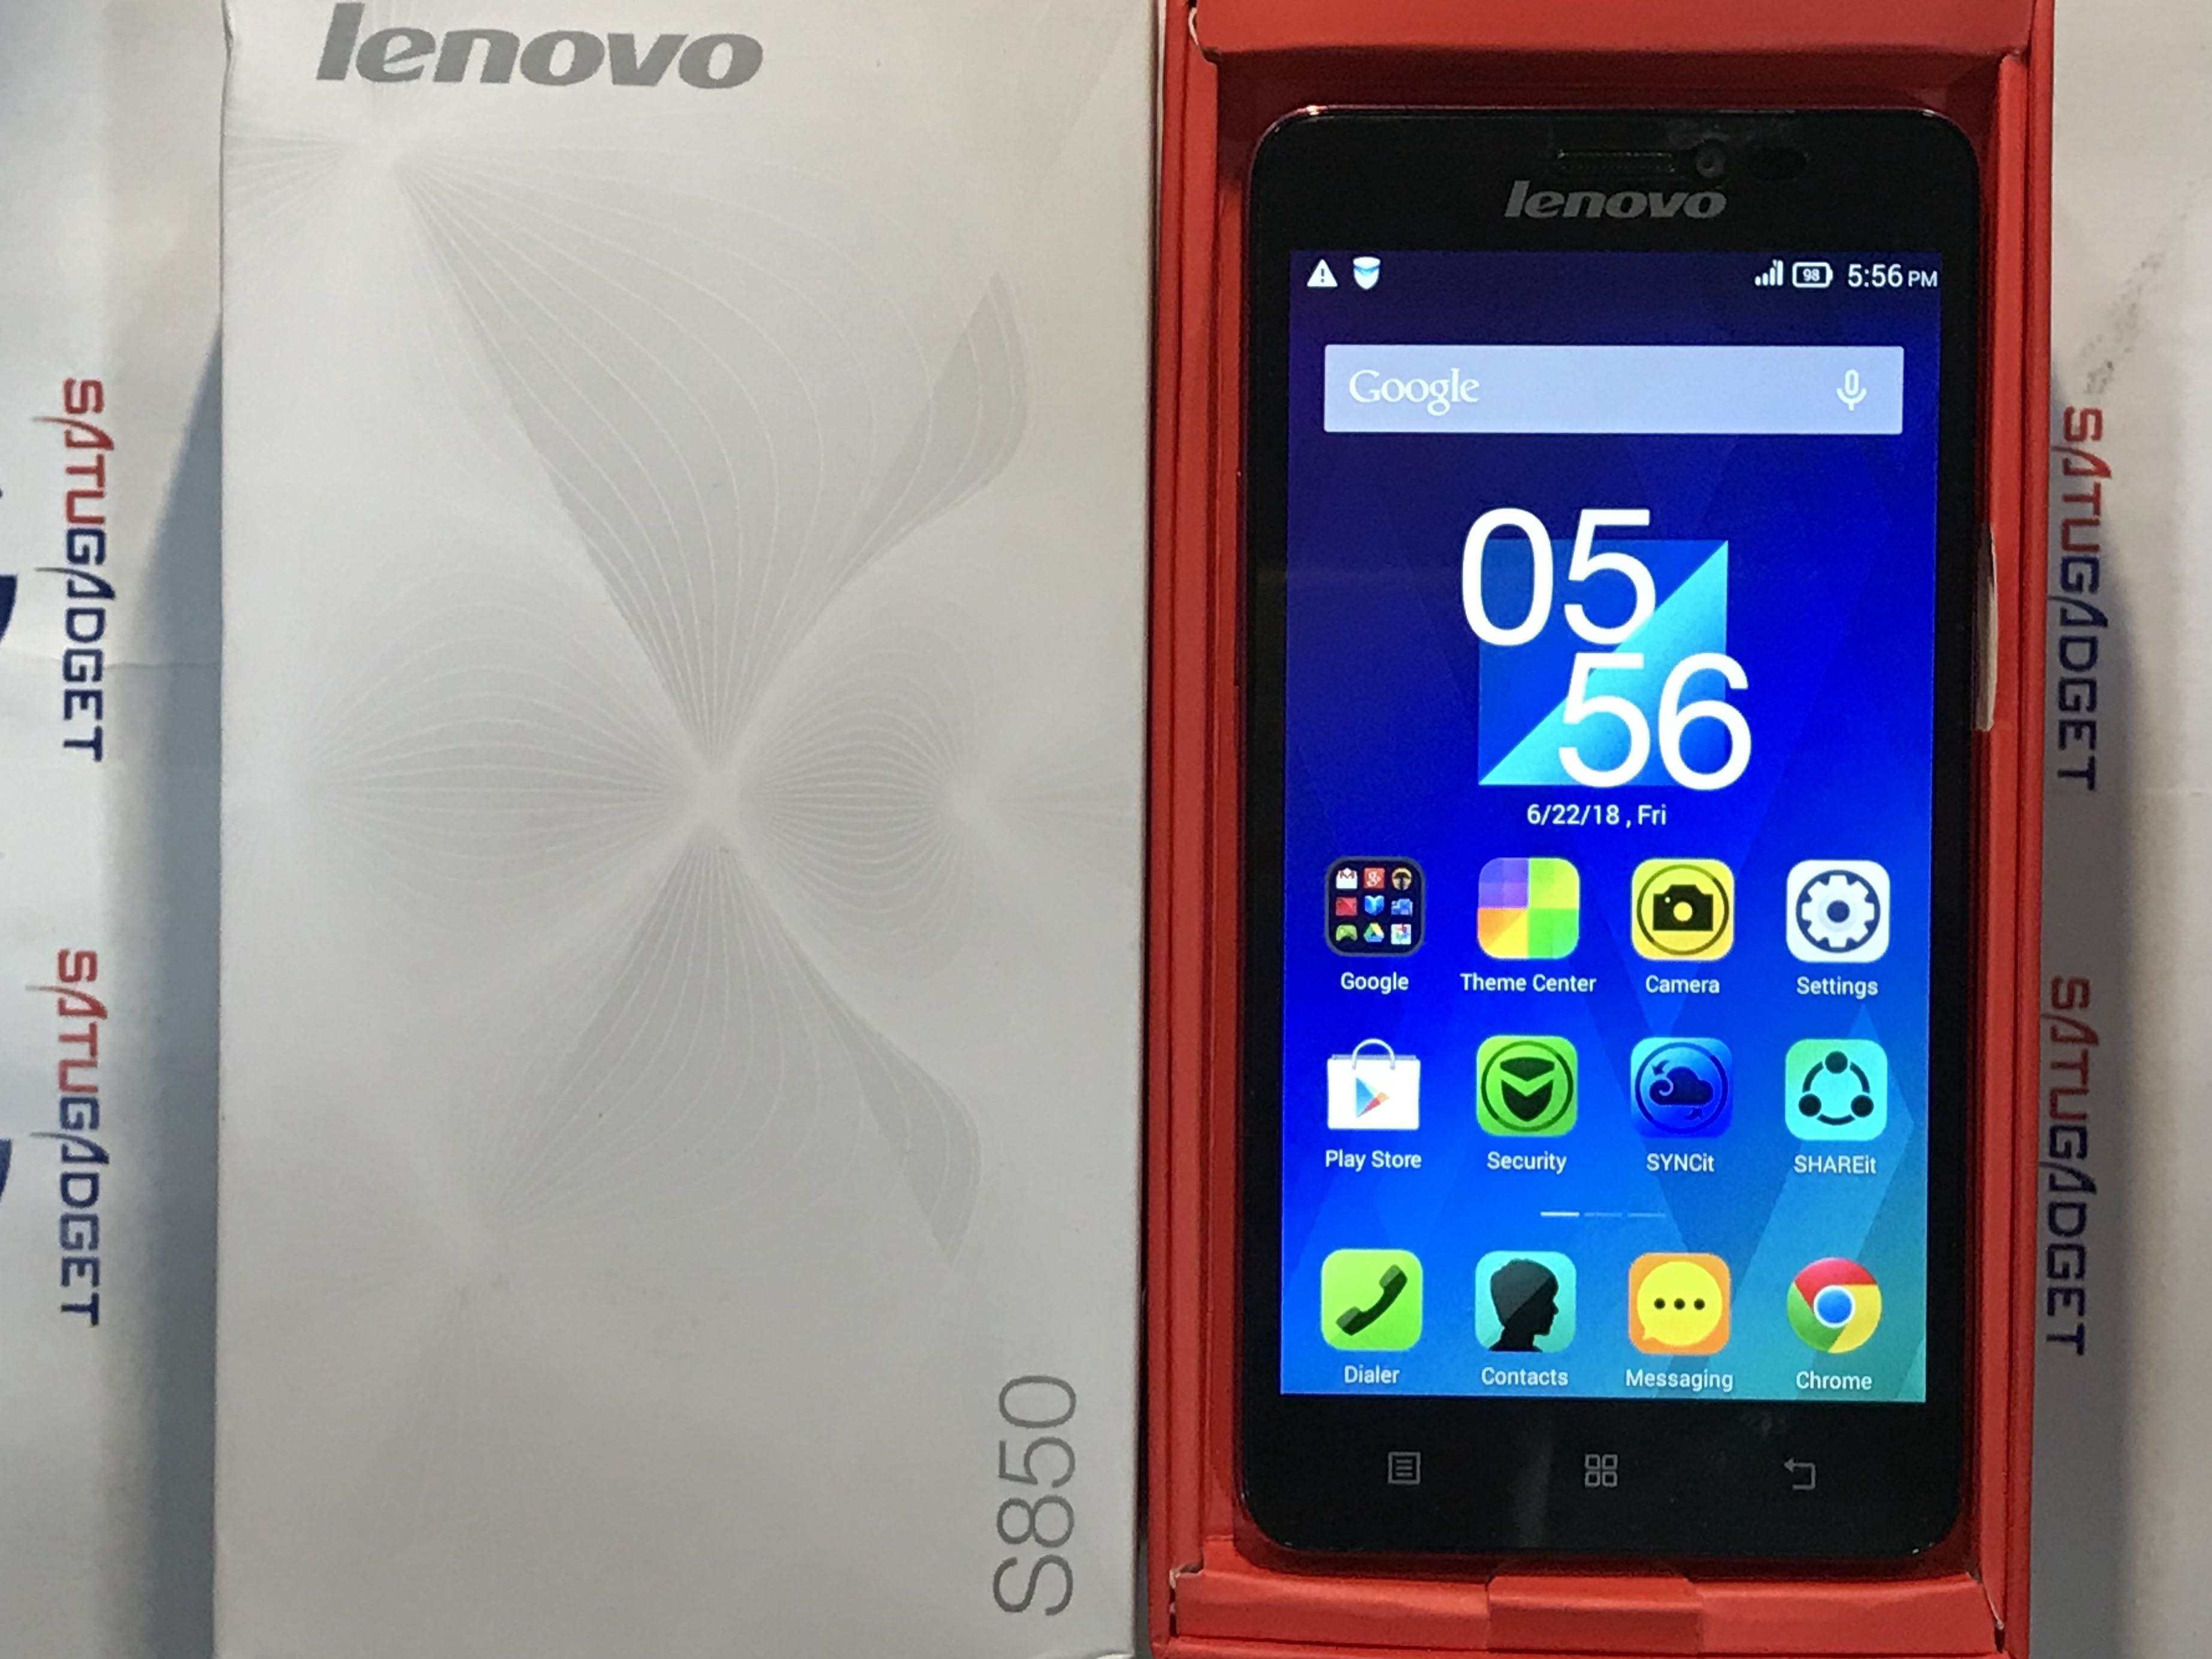 Lenovo S850 Mobiles Tablets Android Phones Others On Carousell Quadcore Processor